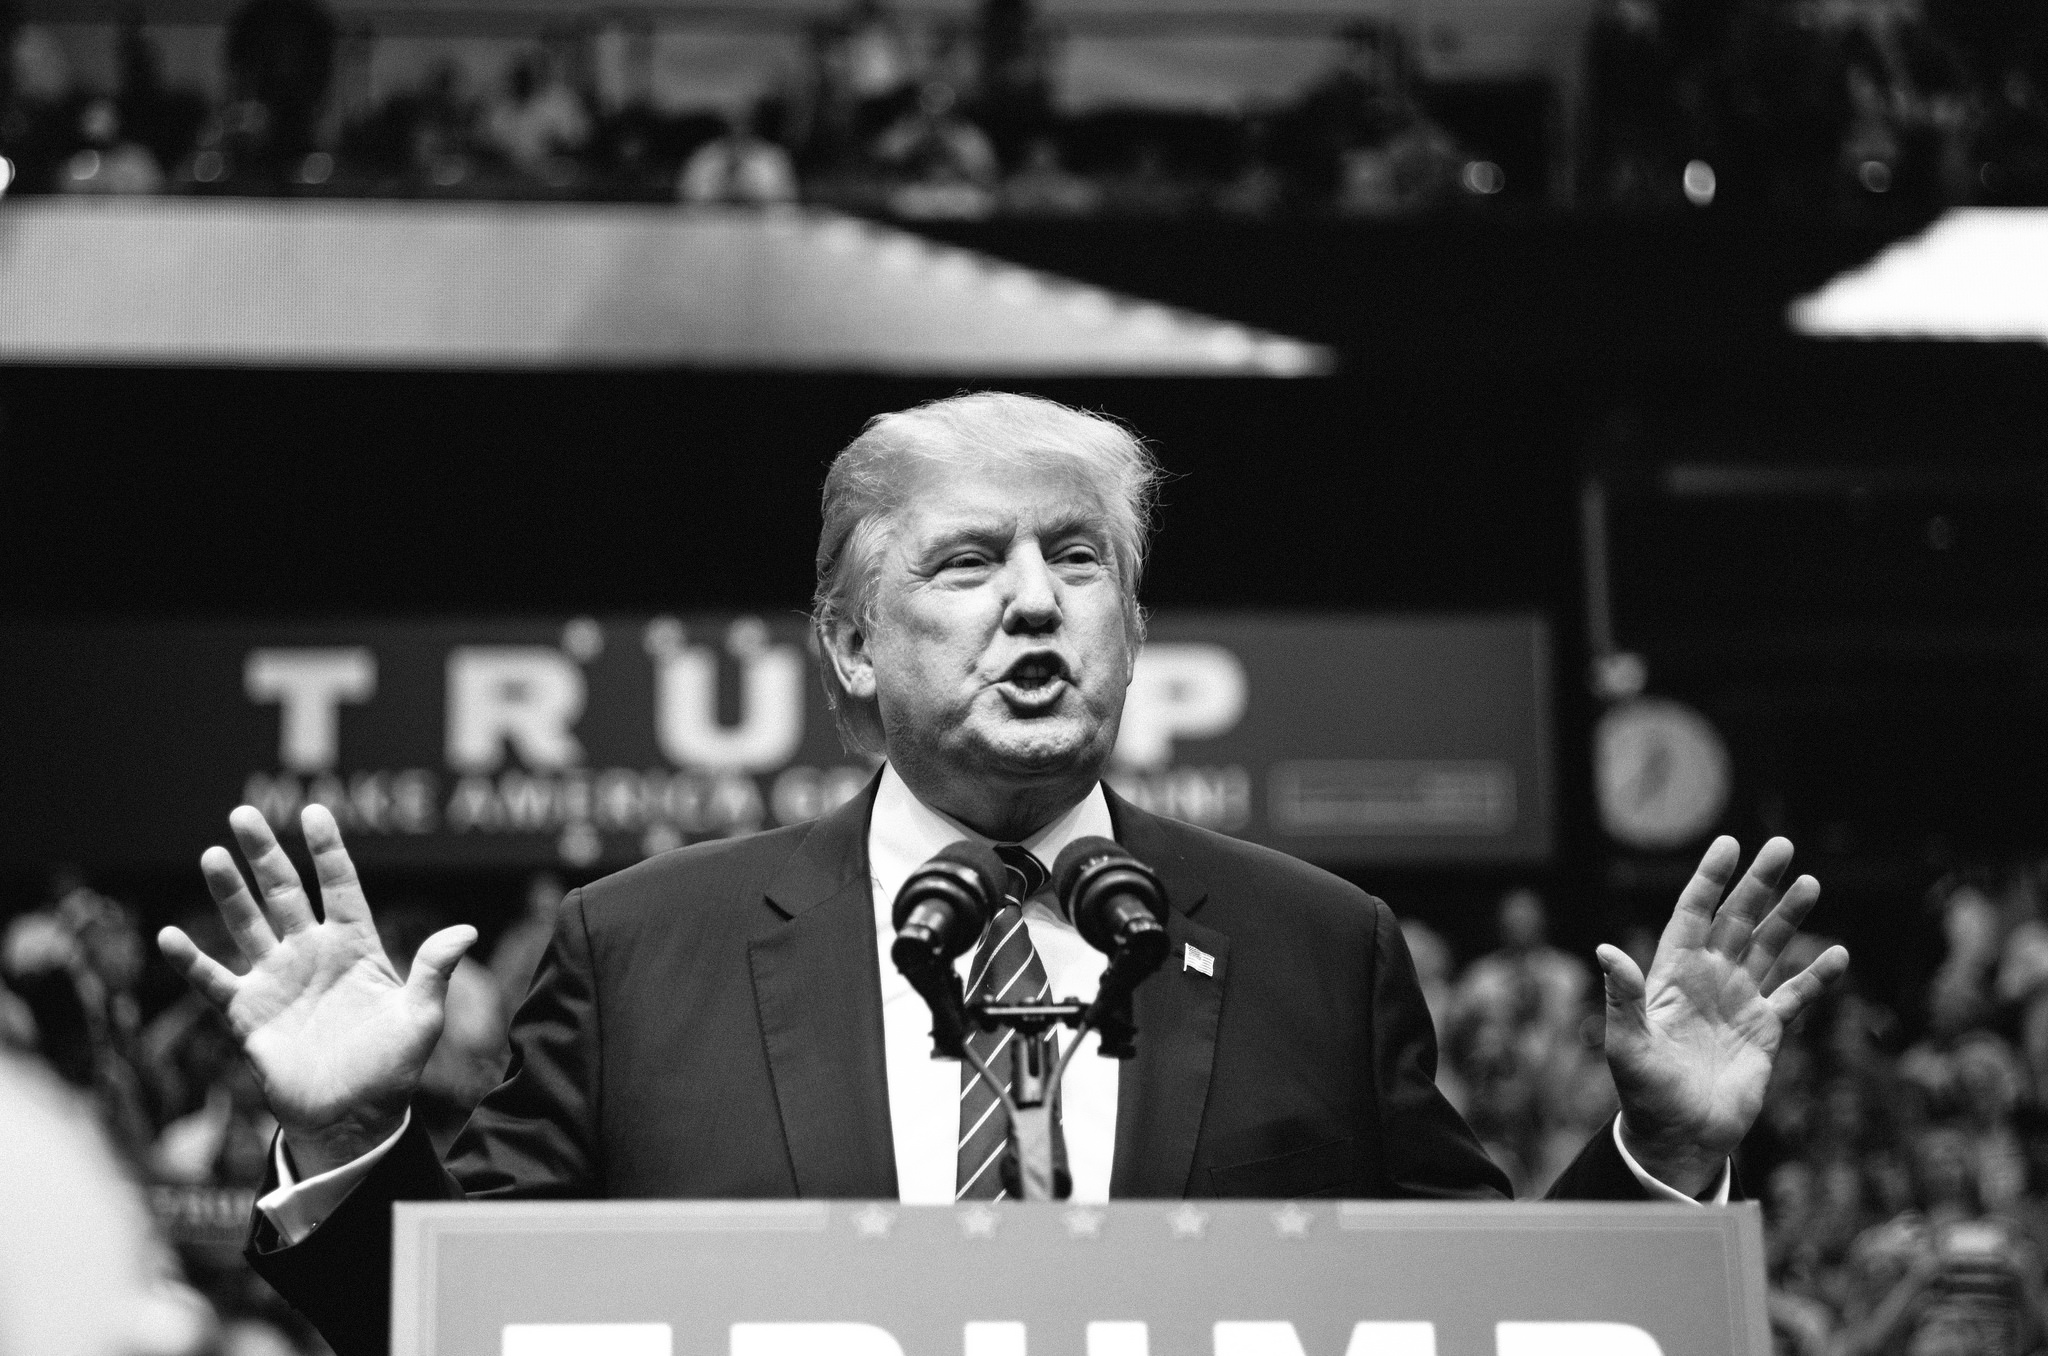 A black and white photo of Donald Trump giving a speech at a rally.